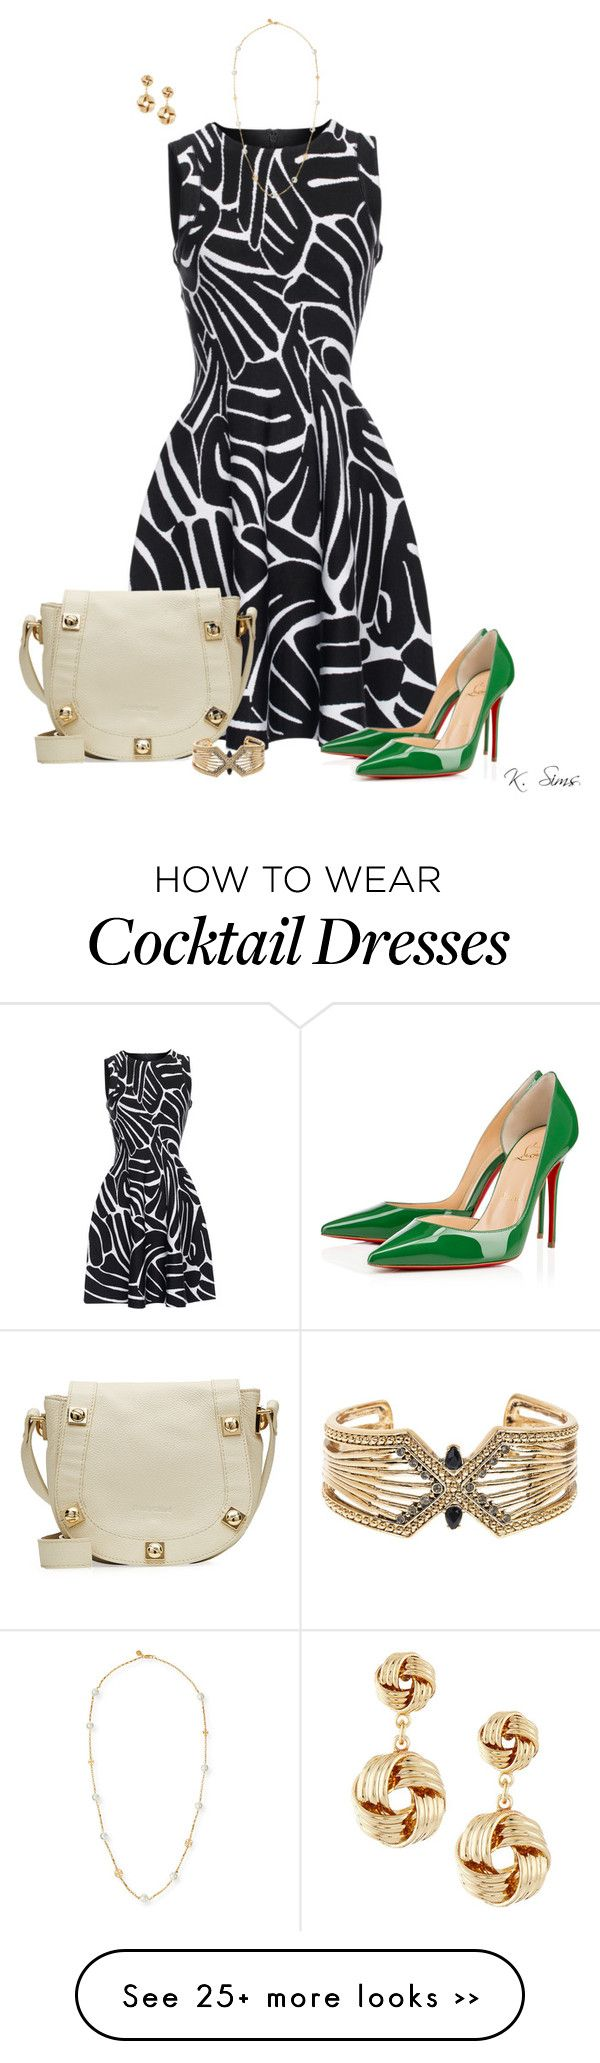 """Untitled #6186"" by ksims-1 on Polyvore"